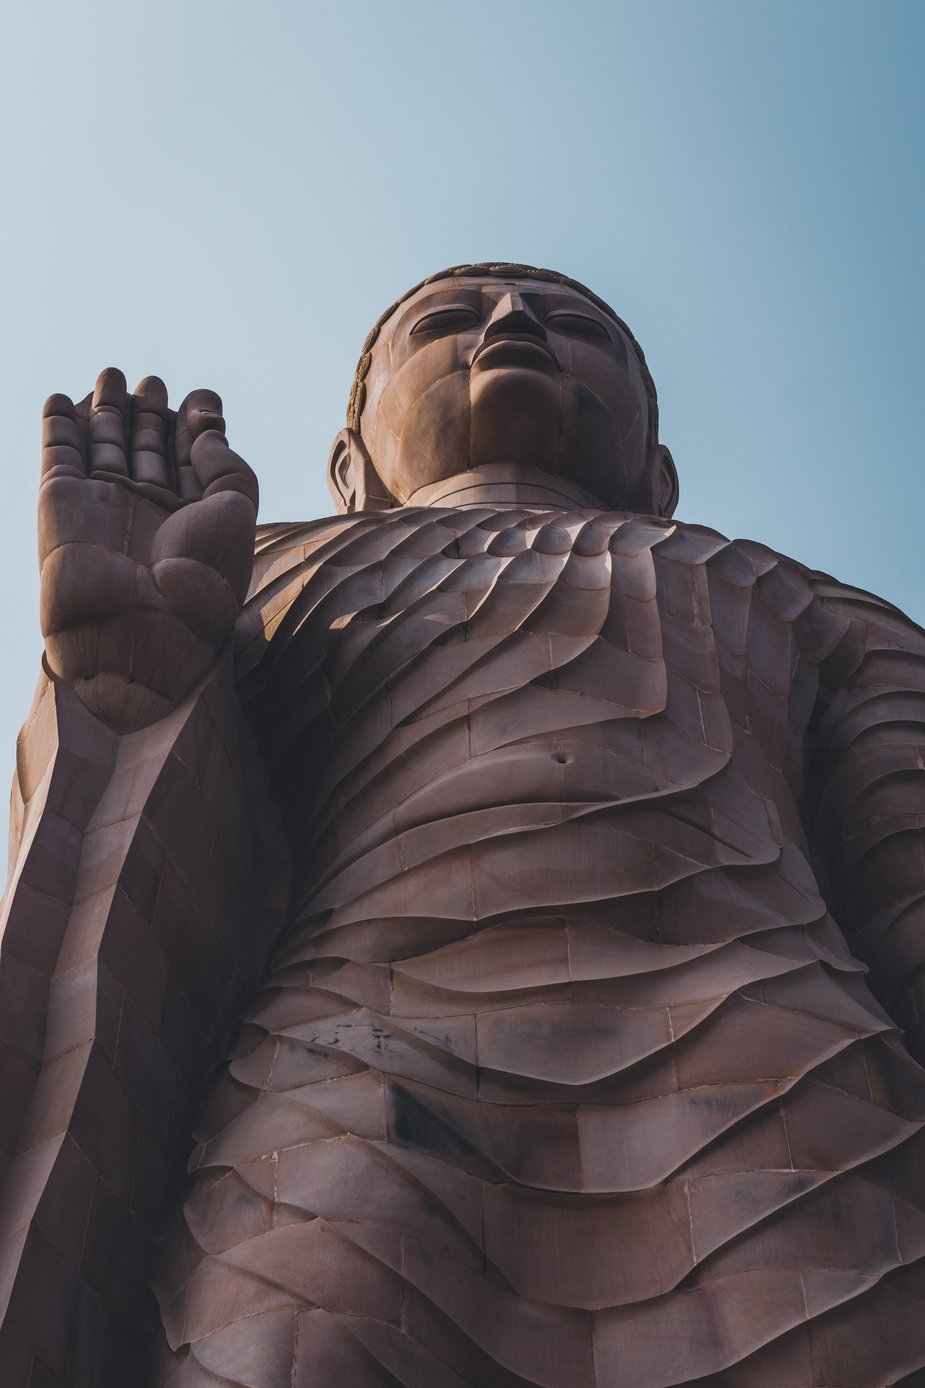 Things to Remember While Placing Your Buddha Statues